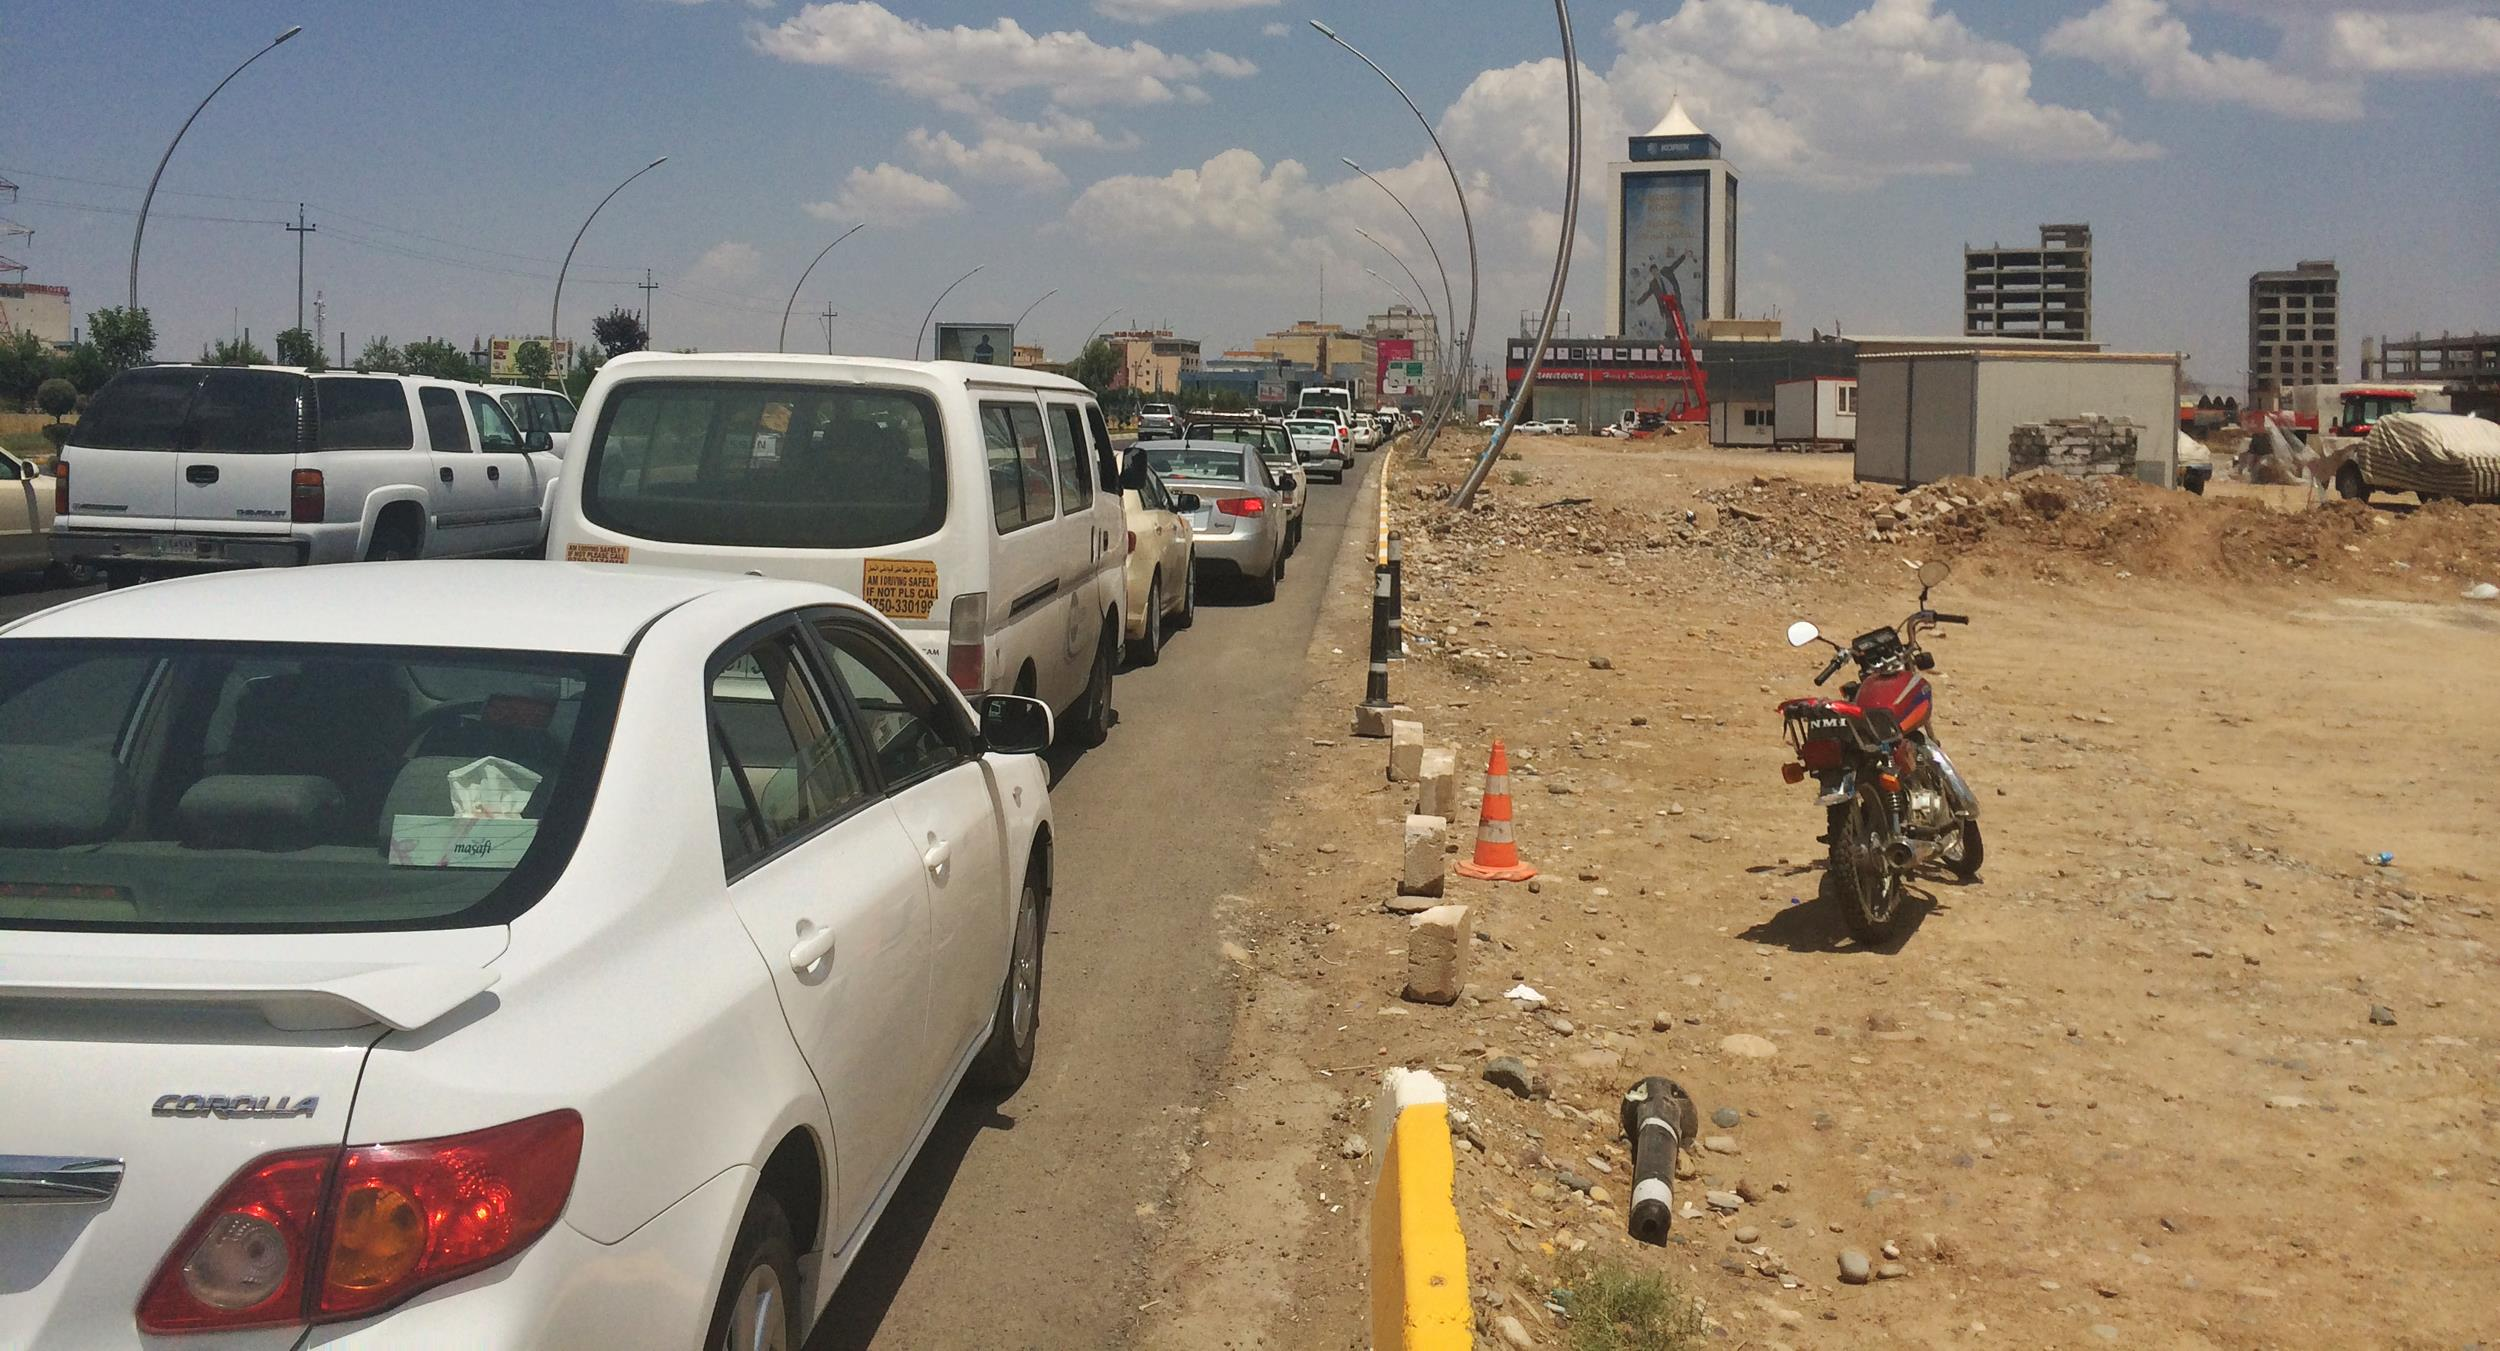 Image: At least 200 cars wait in line for gas at a petrol station in Erbil